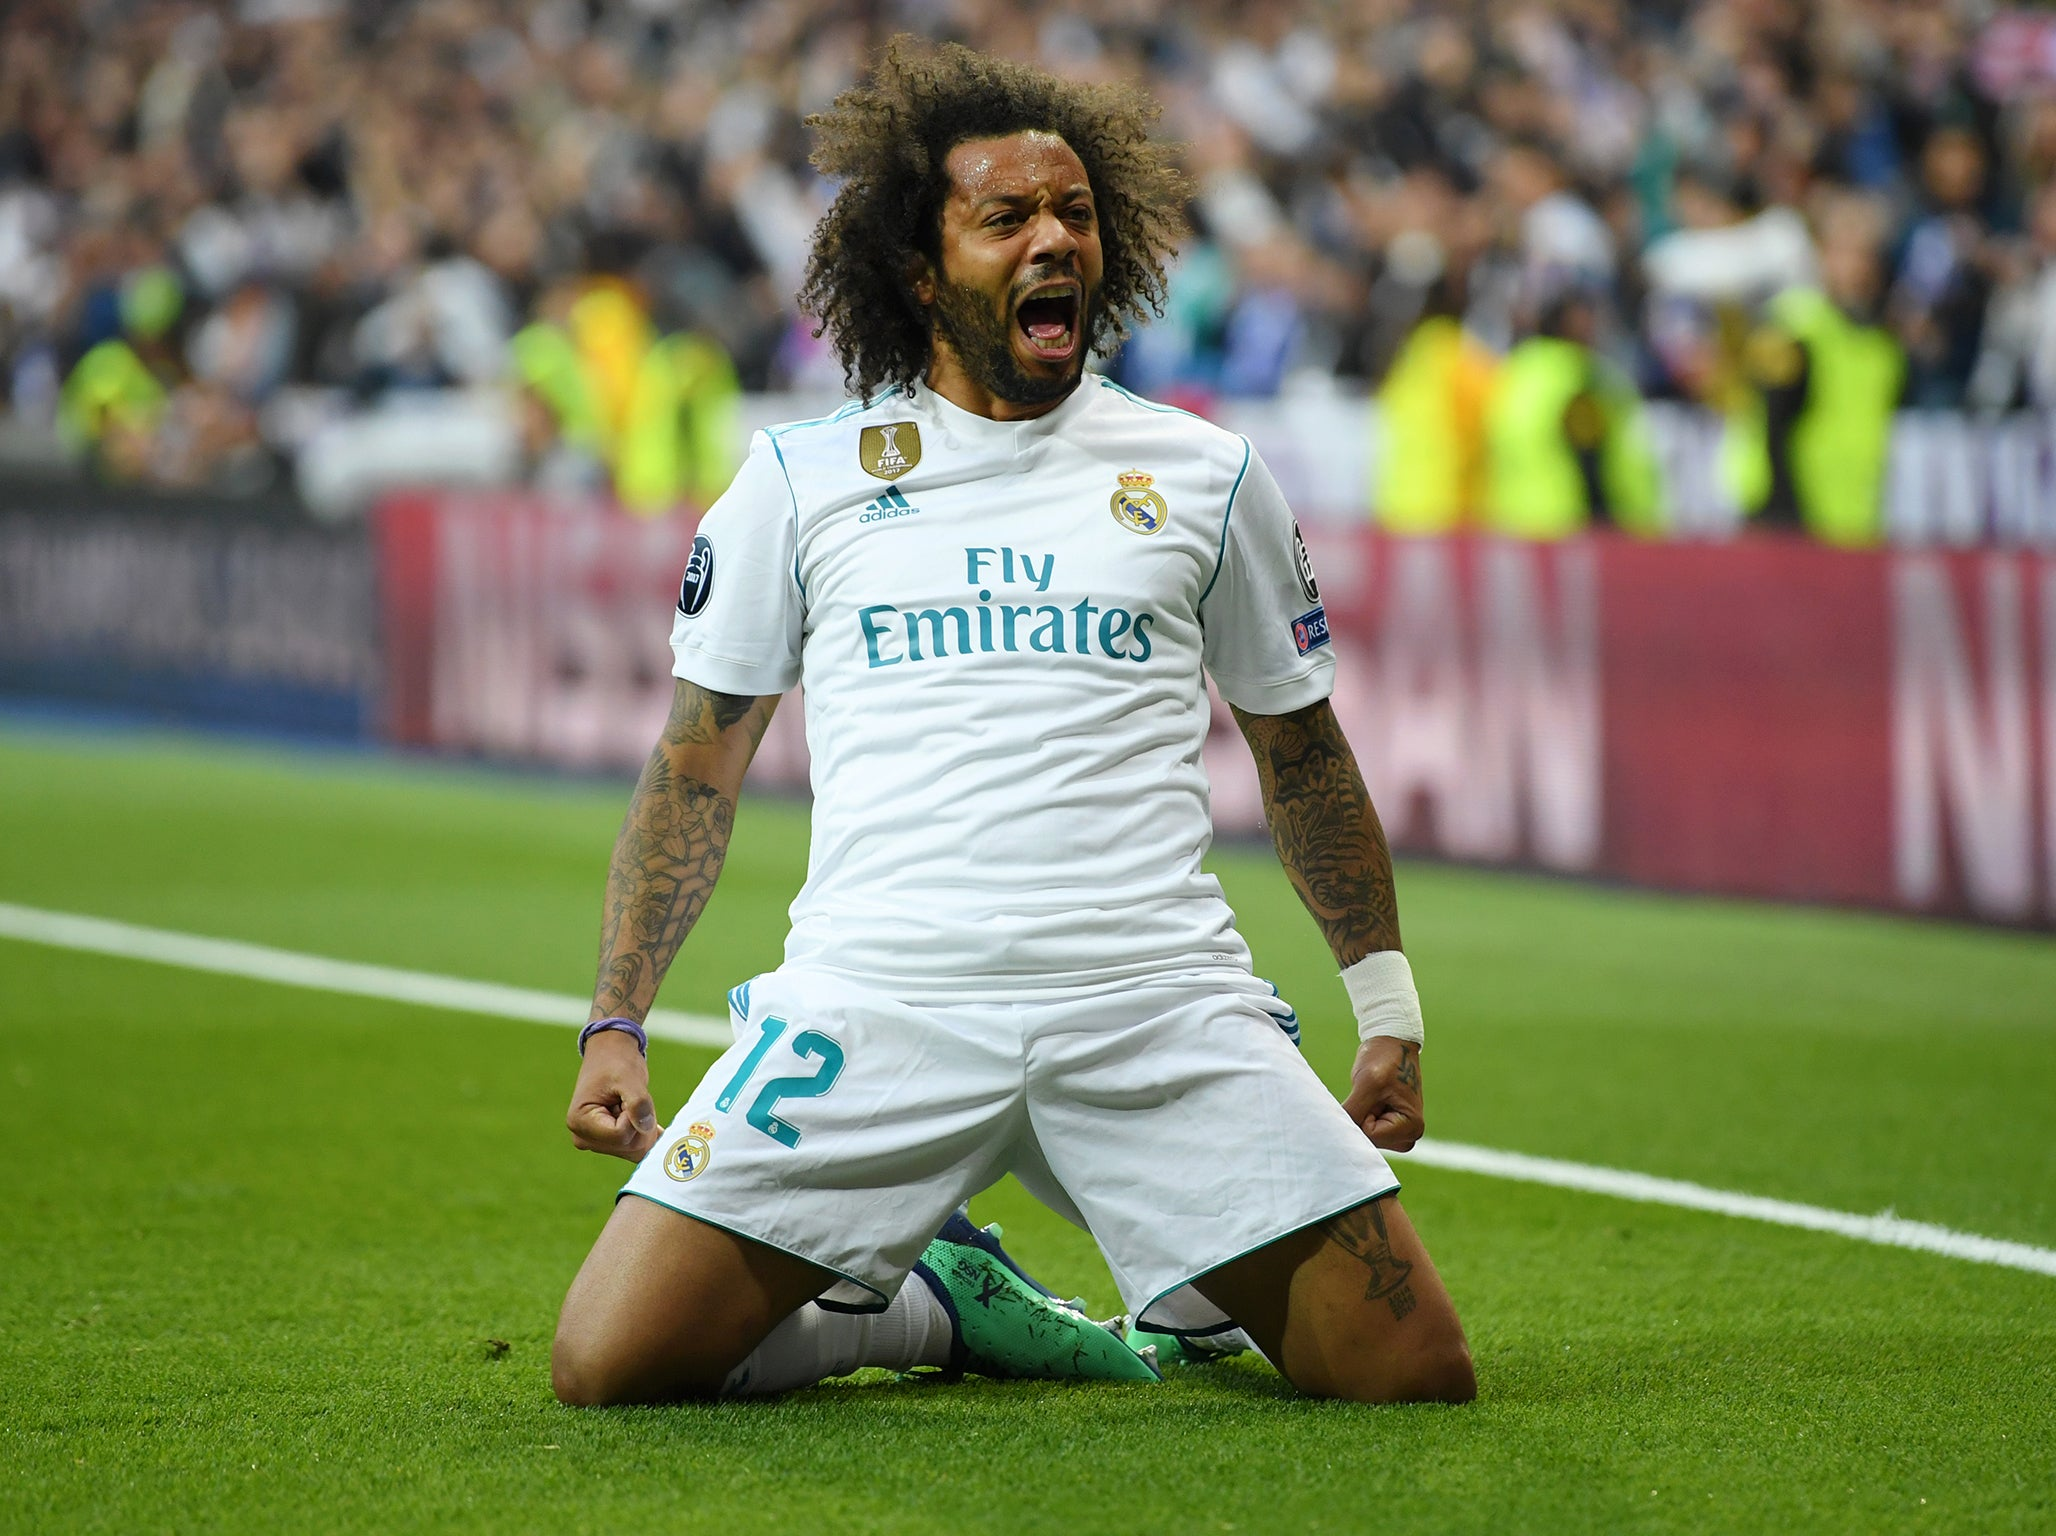 Real Madrid vs Bayern Munich LIVE: Goals and minute-by-minute coverage of the Champions League semi-final